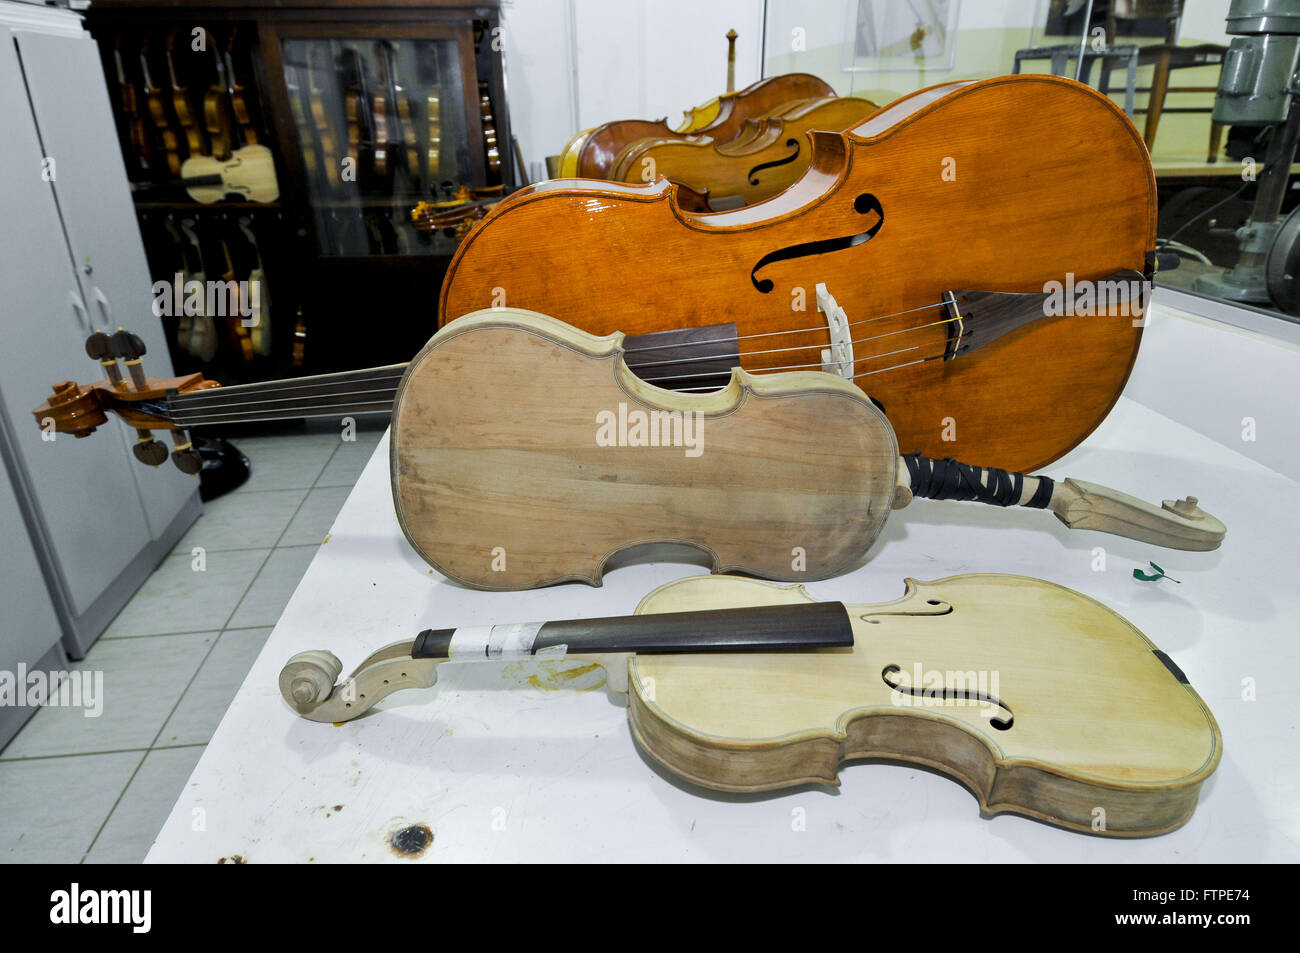 Shop luteria - Handmade manufacture of stringed instruments - Stock Image